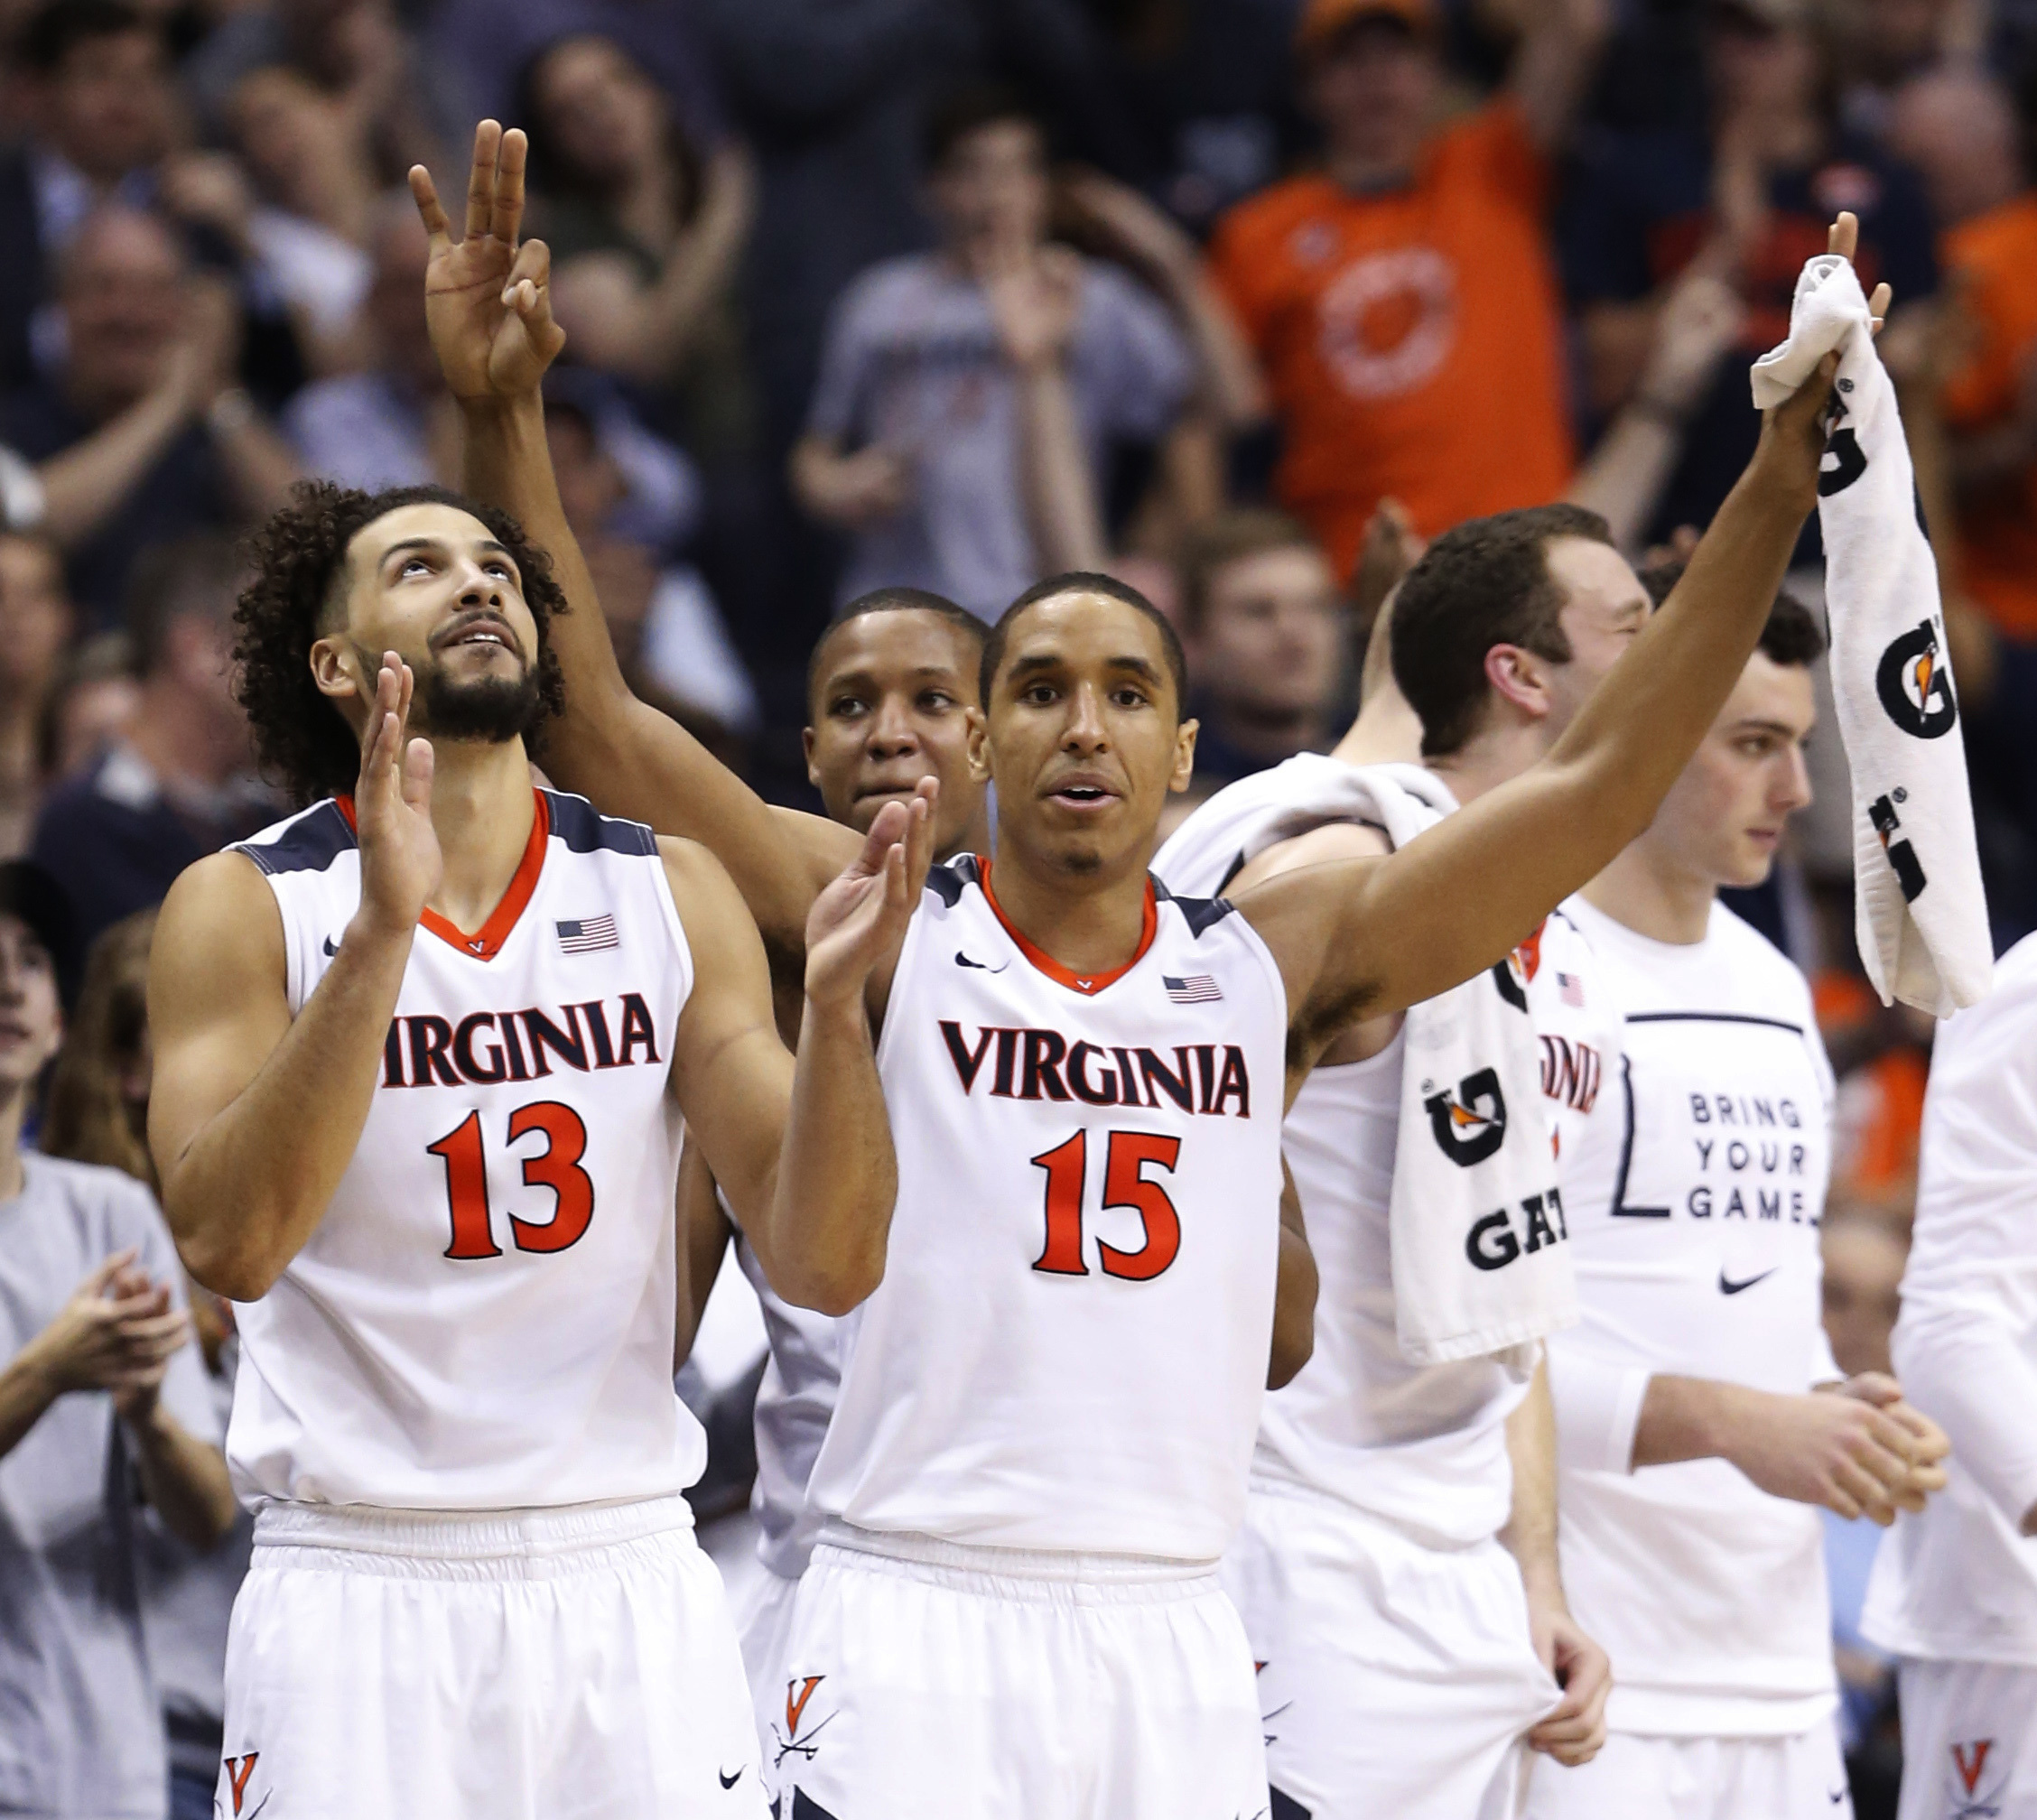 FILE - In this March 10, 2016, file photo, Virginia guard Malcolm Brogdon (15) and forward Anthony Gill (13) cheer their team during the second half against Georgia Tech in an NCAA college basketball game in the Atlantic Coast Conference men's tournament,